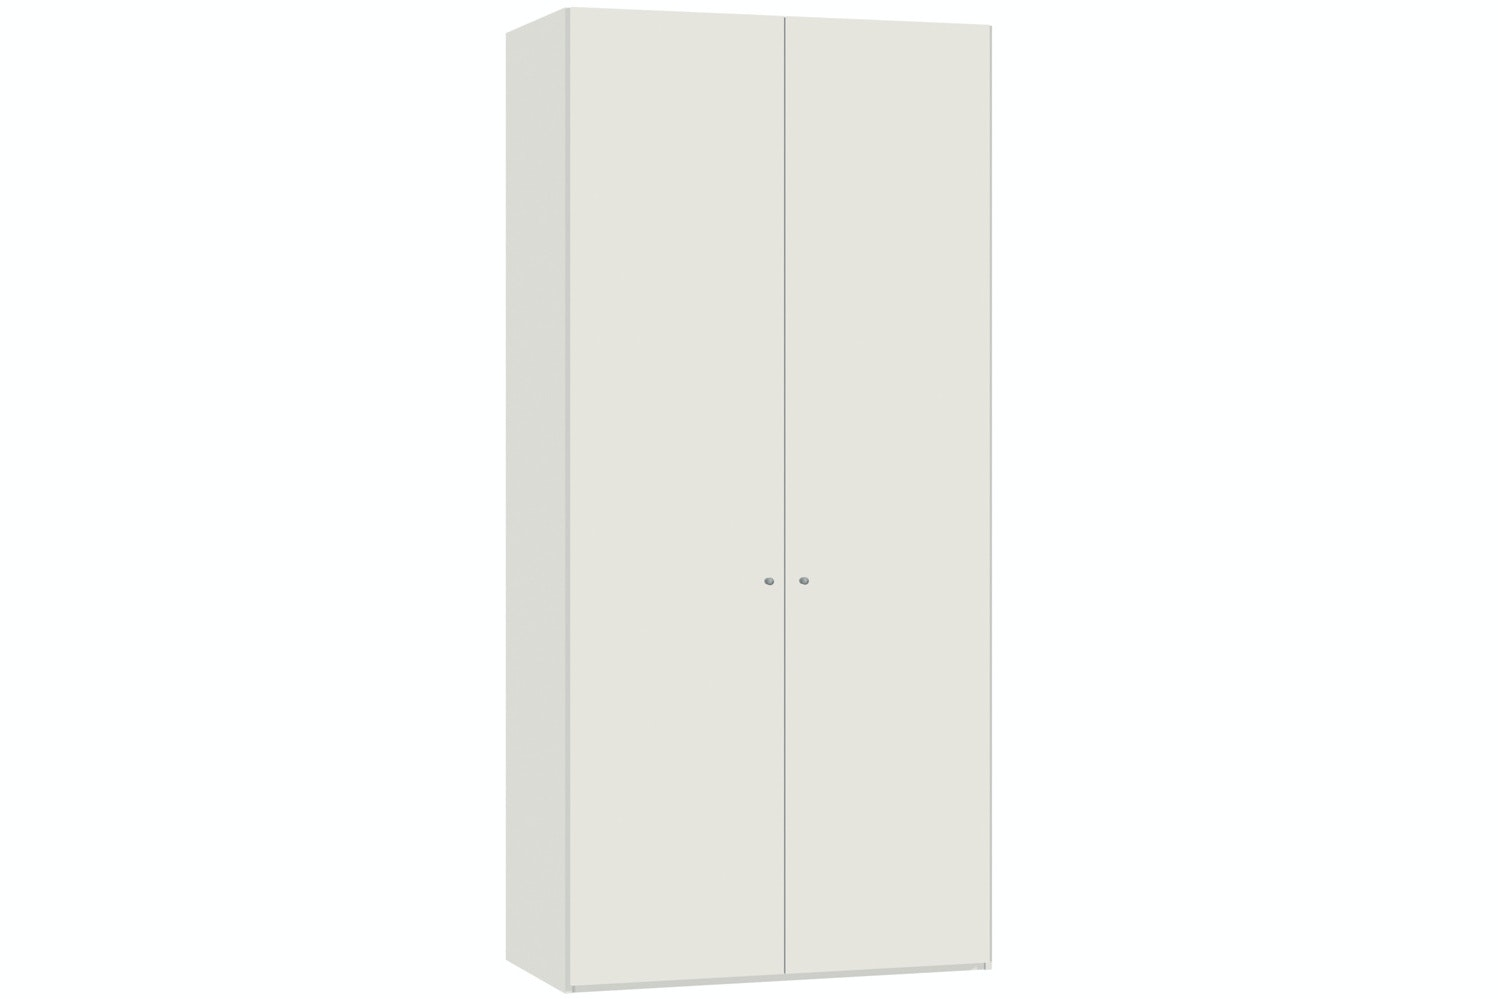 Yasmin Hinged 2 Door Wardrobe 102Cm | White High Gloss